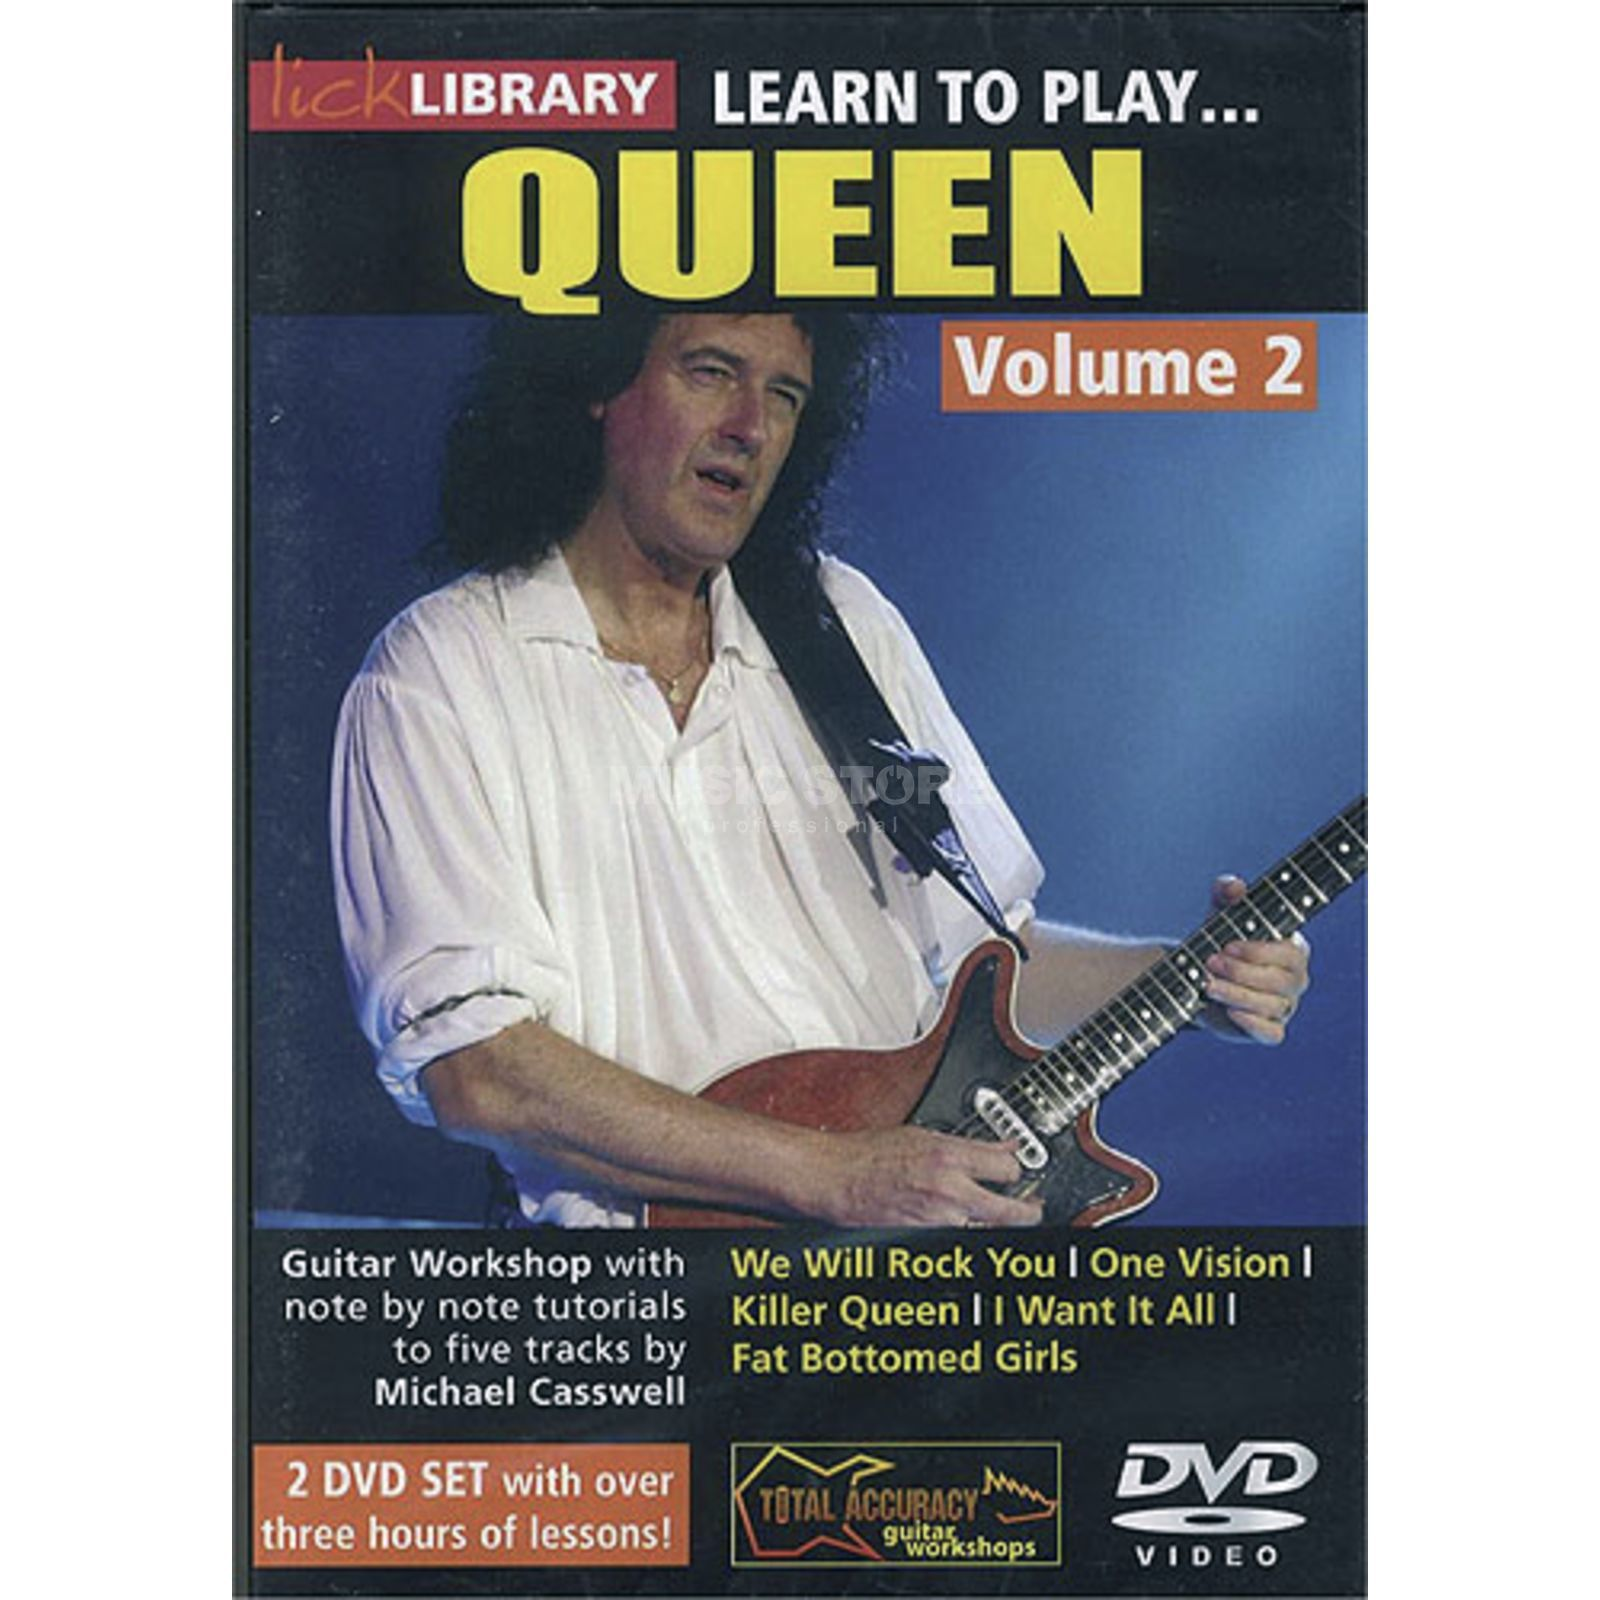 Roadrock International Lick Library: Learn To Play Queen 2 DVD Produktbild